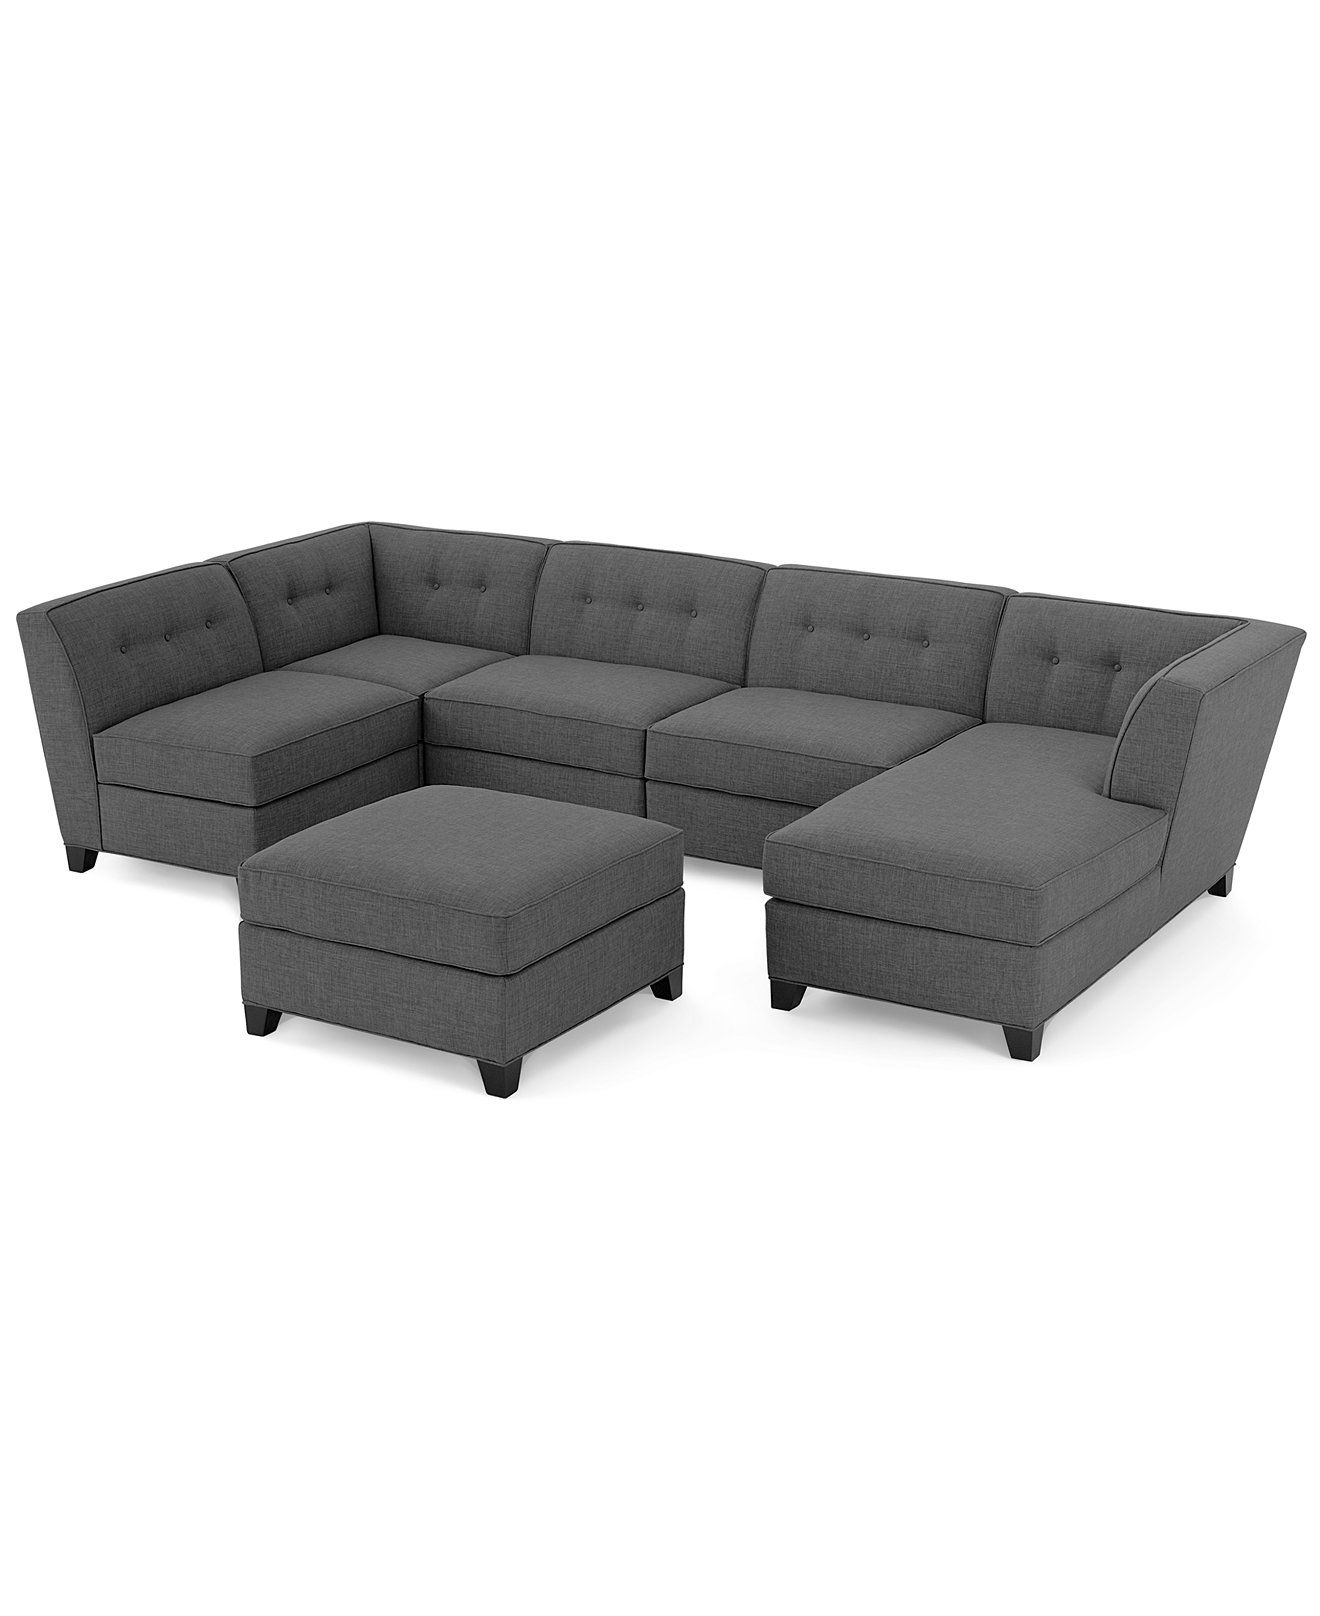 Harper Fabric 6 Piece Modular Sectional Sofa Square Corner Unit One Arm Chaise 3 Armless Chairs And Ottoman Modular Sectional Sofa Sectional Sofa With Chaise